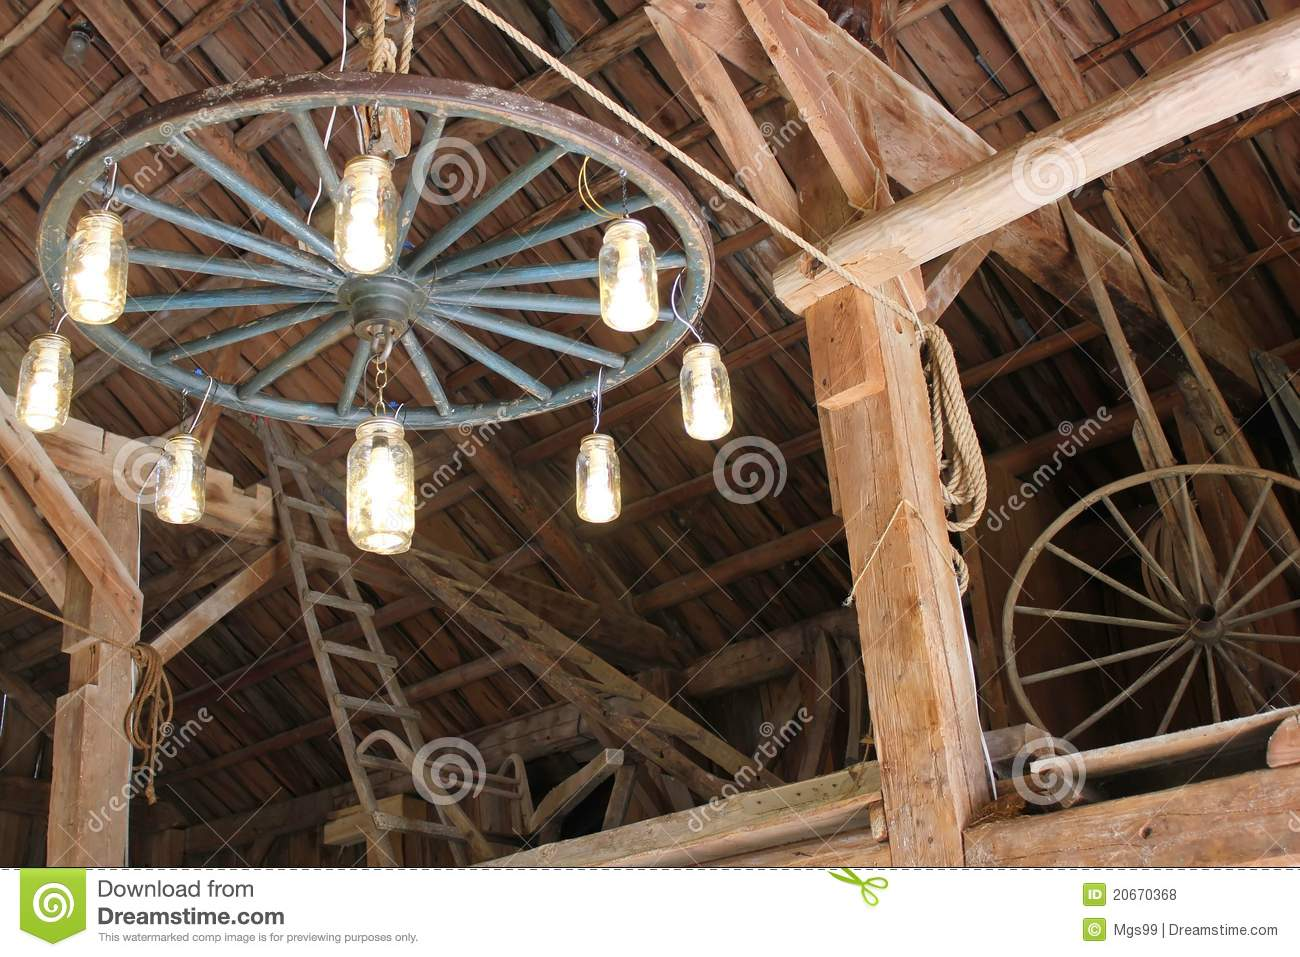 1 718 Wagon Wheel Light Photos Free Royalty Free Stock Photos From Dreamstime